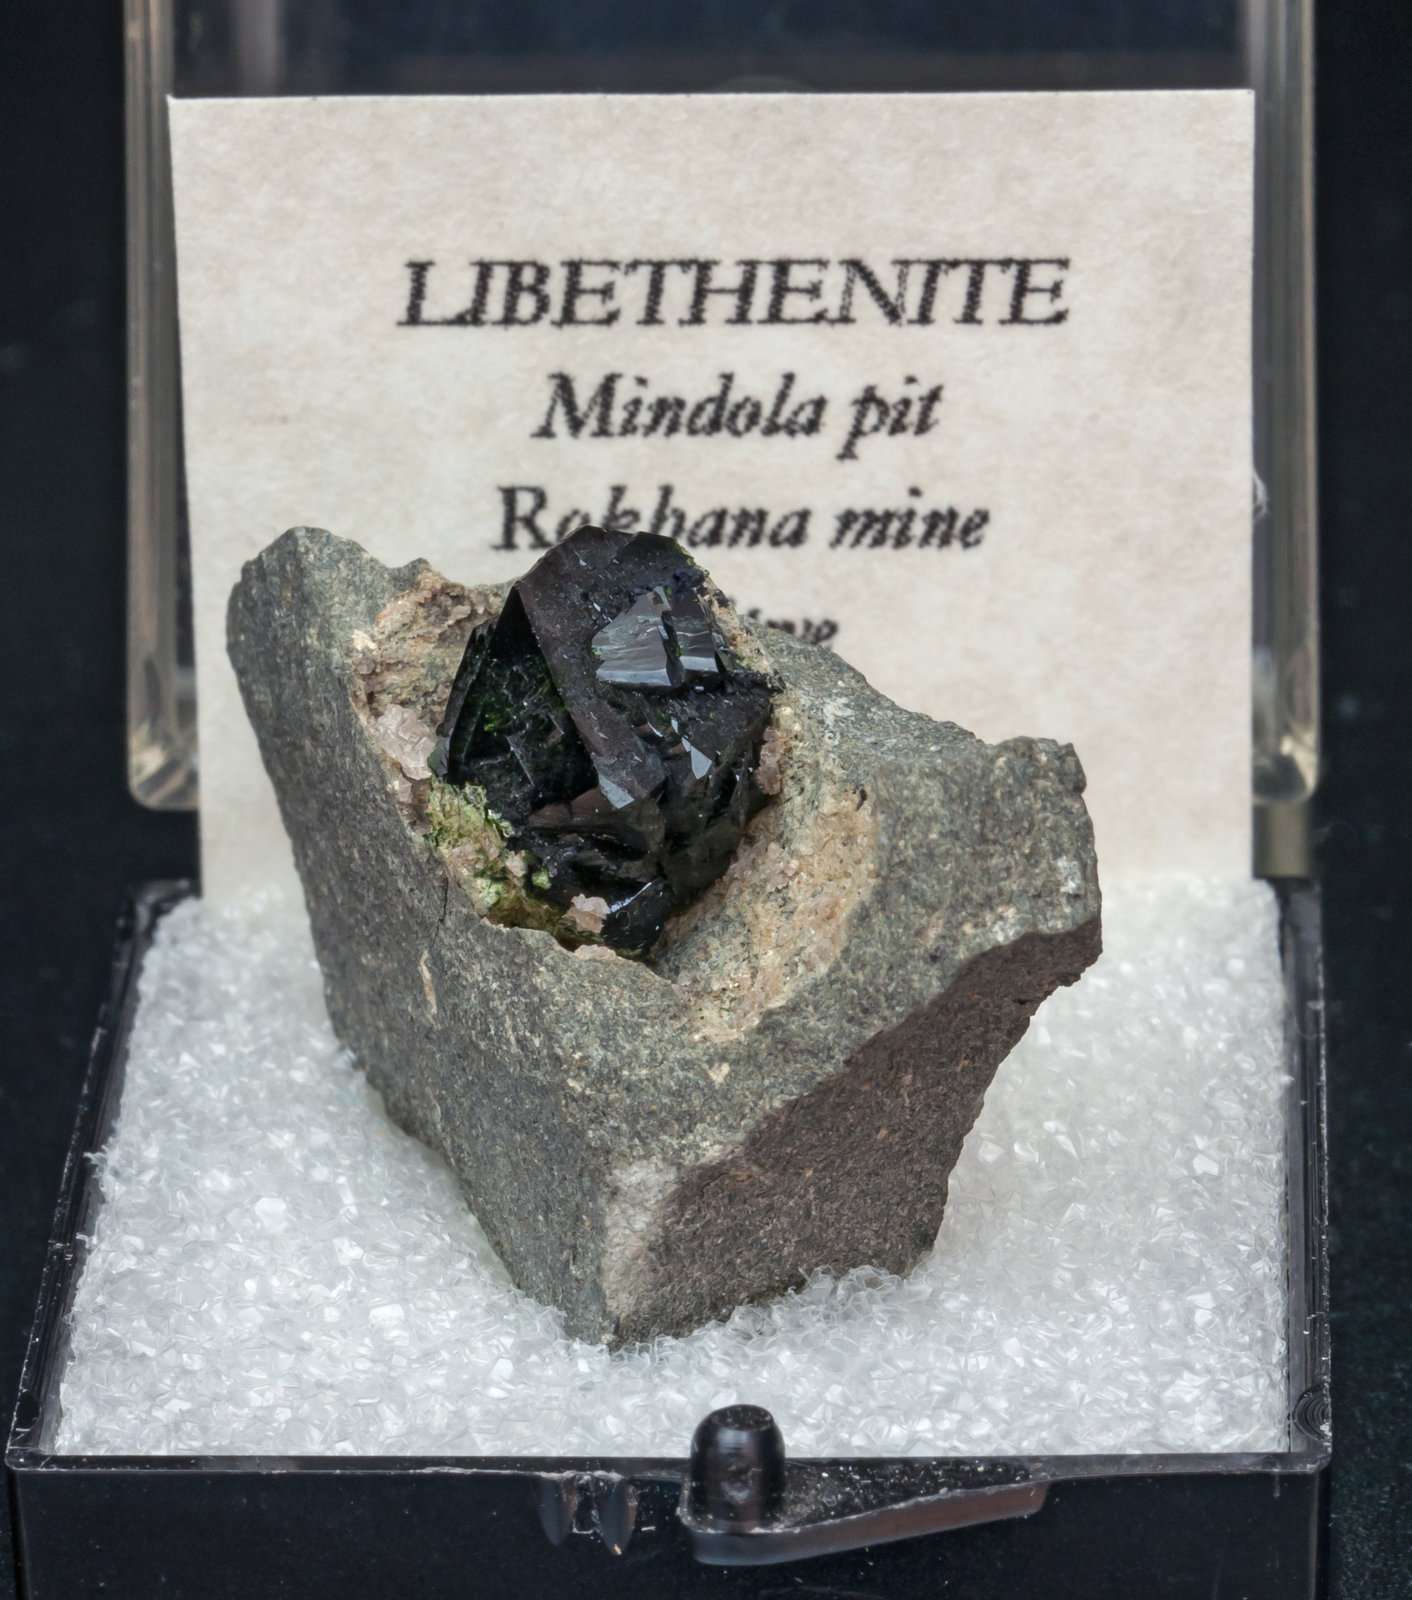 specimens/s_imagesAK7/Libethenite-TV6AK7f1.jpg